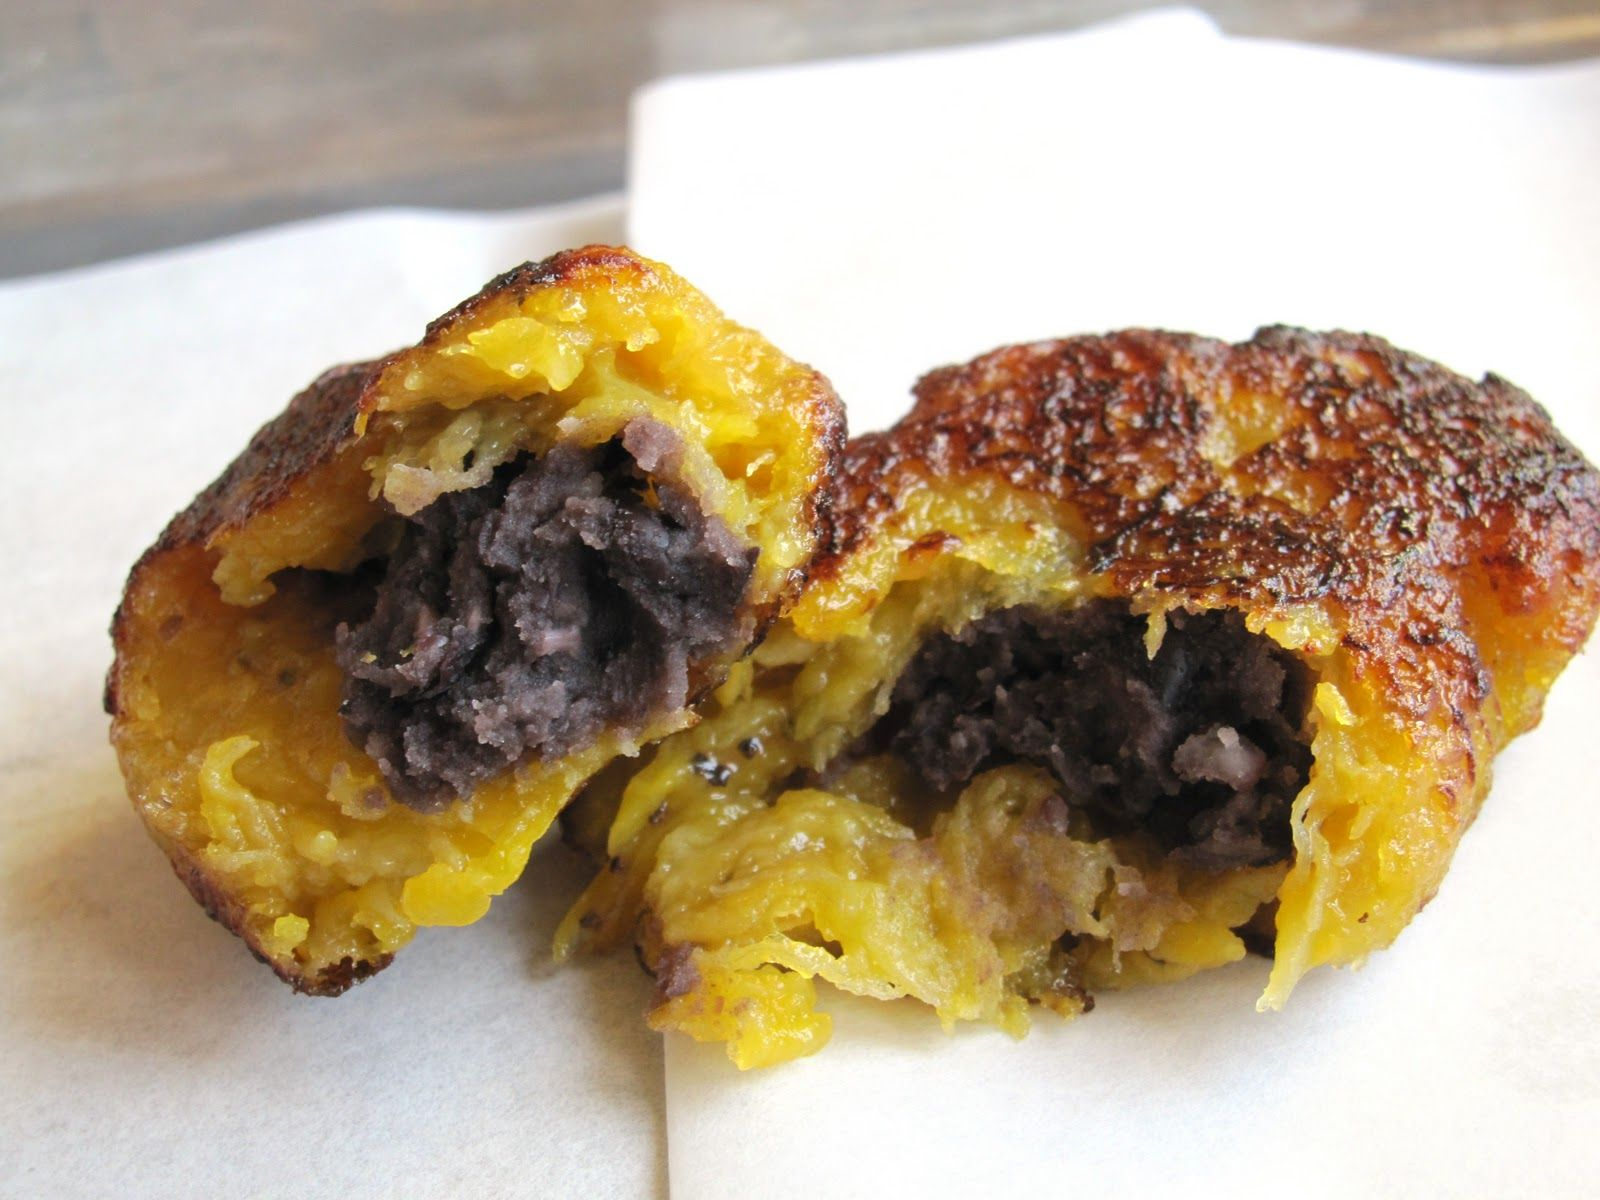 Plantain recipe rellenitos plantain patties stuffed with black plantain recipe rellenitos plantain patties stuffed with black beans traditional guatemalan foodguatemalan forumfinder Images